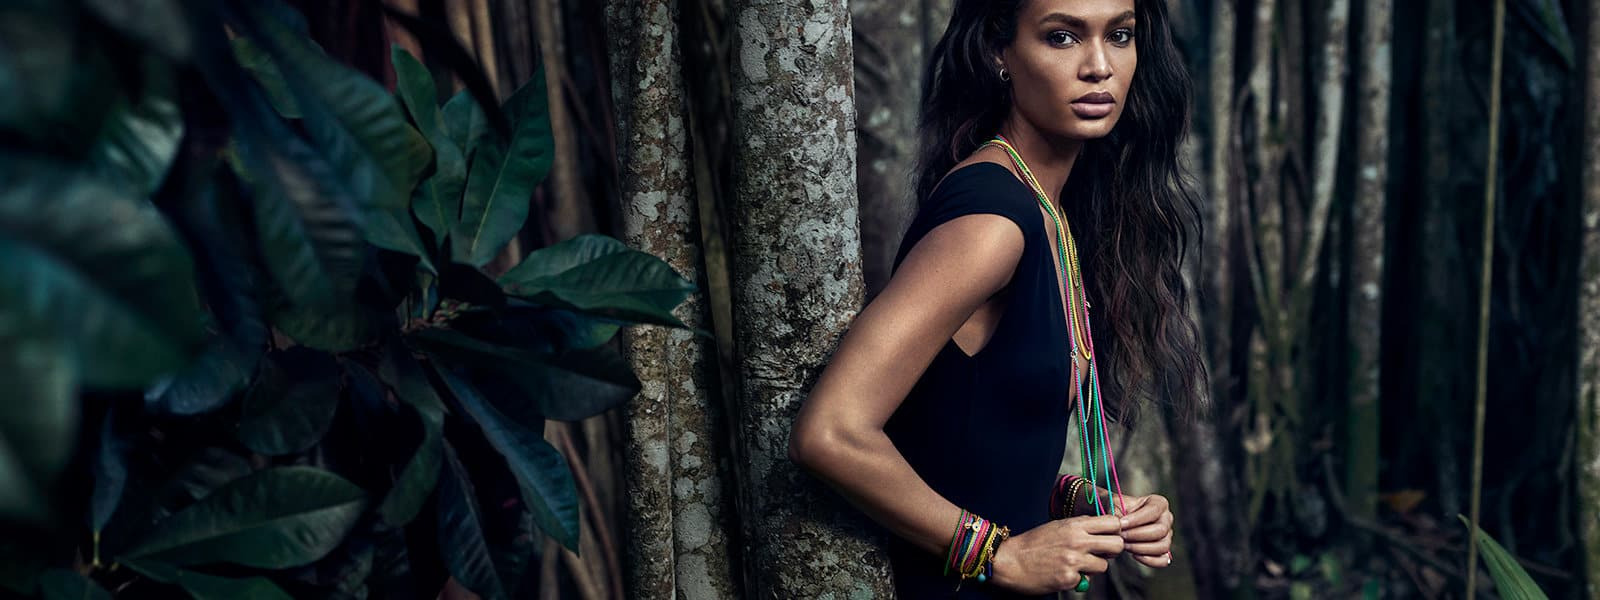 DY Bel Aire colourful chain necklaces in acrylic-coated stainless steel with 14K yellow gold and various amulets on model Joan Smalls in a forest.